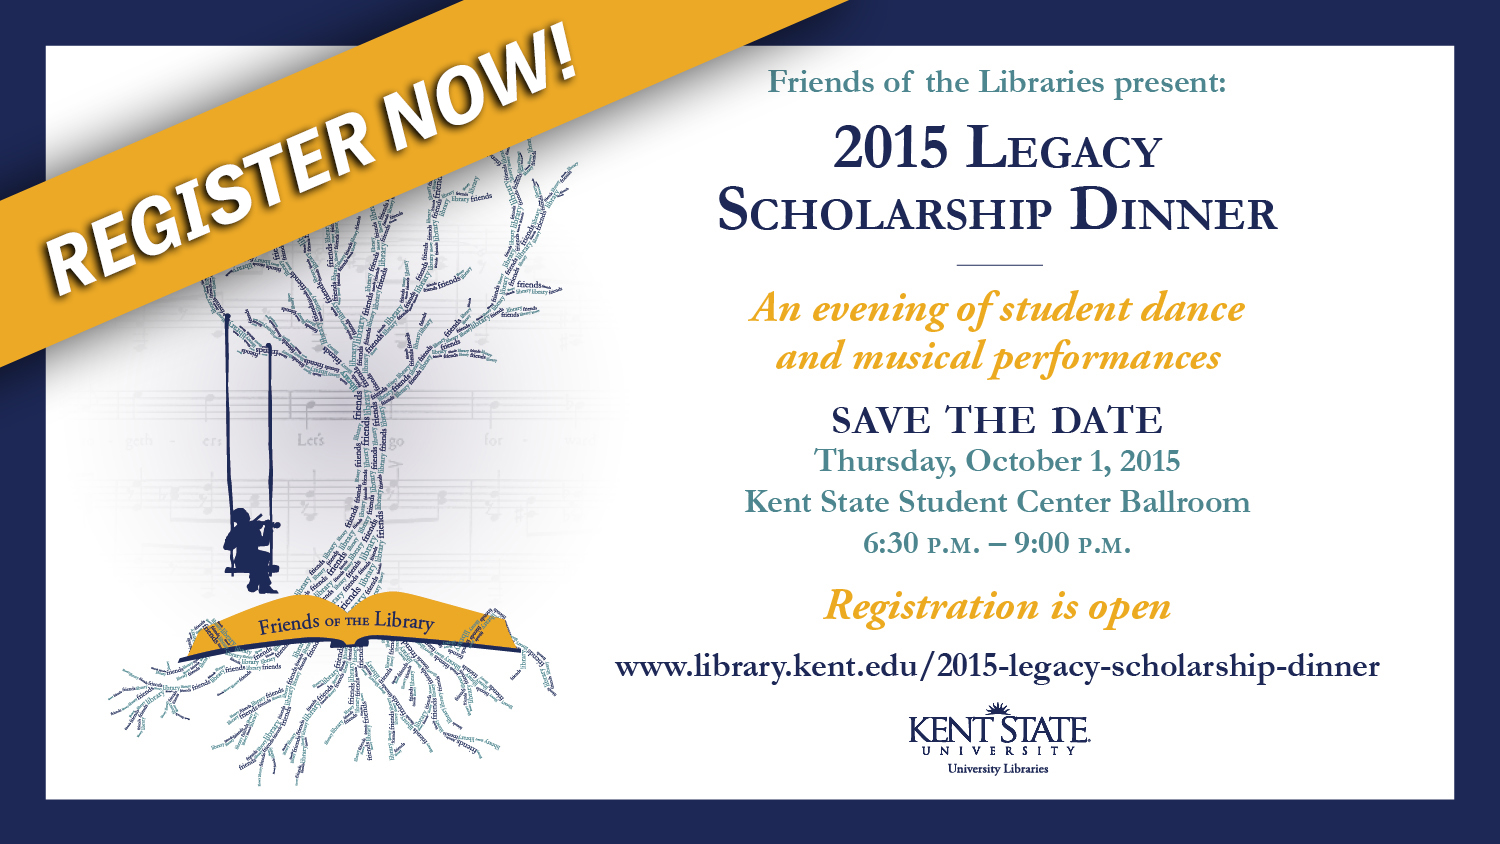 Show more about The Friends of the Libraries, Legacy Scholarship Dinner